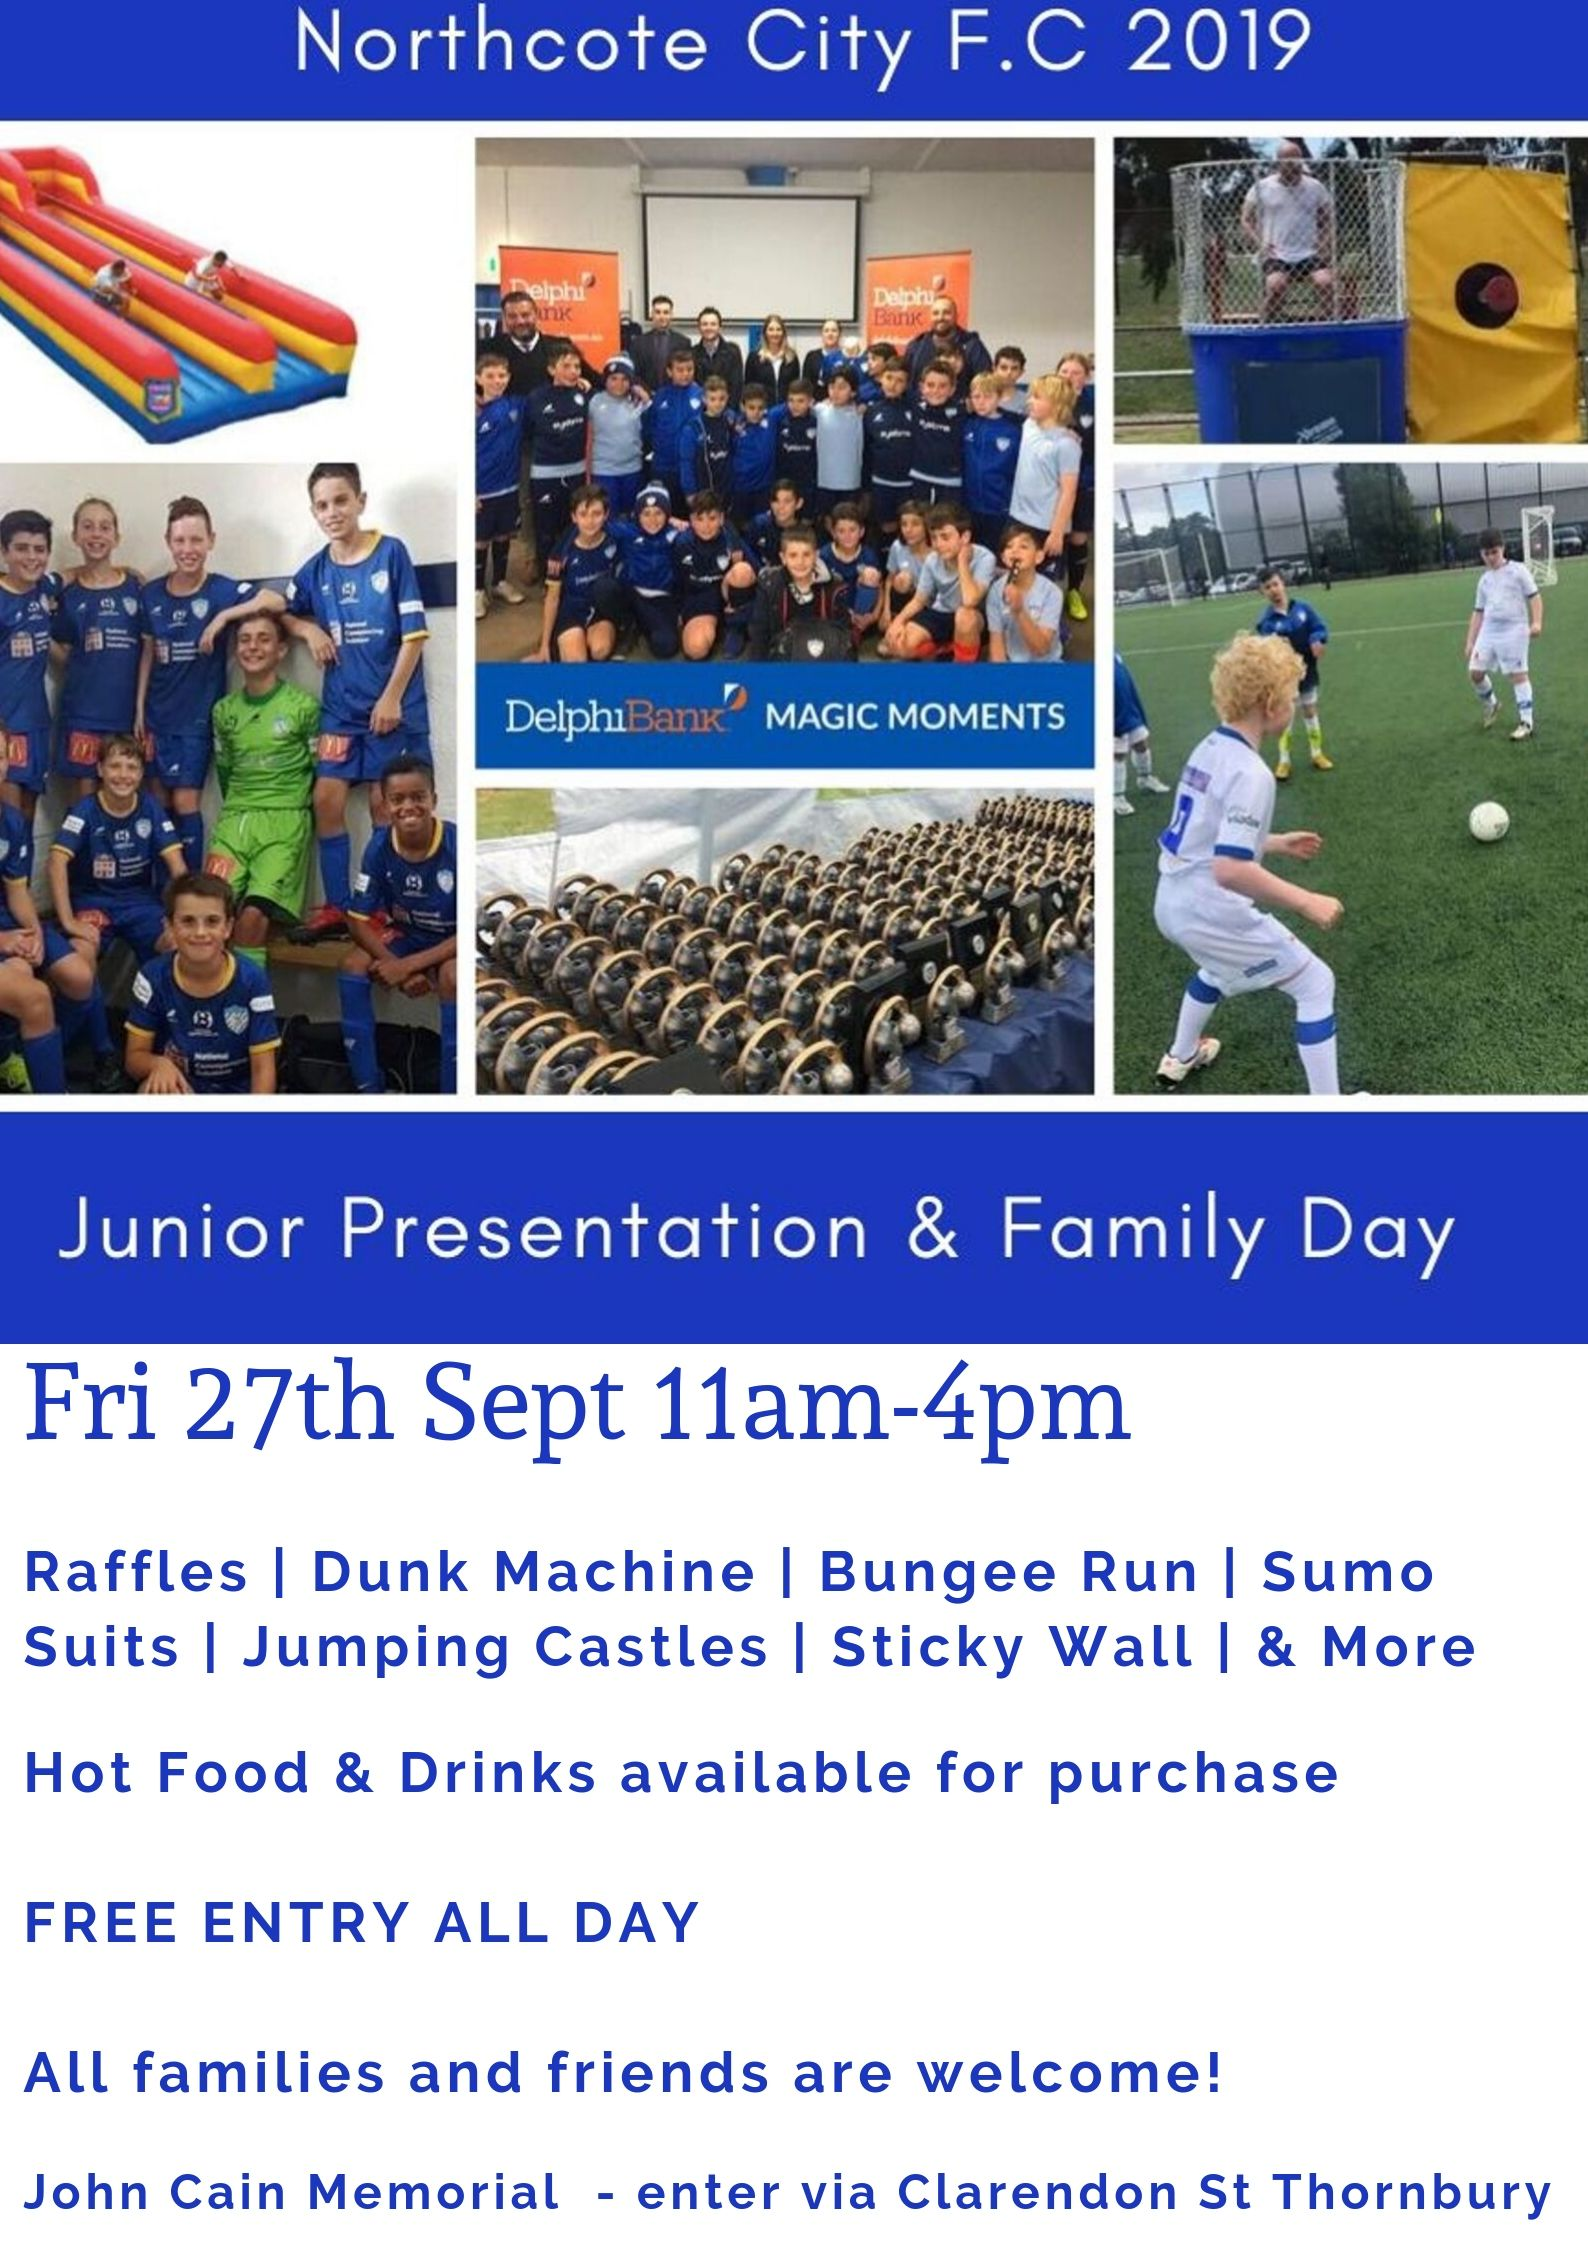 NCFC Junior Presentation Family Day